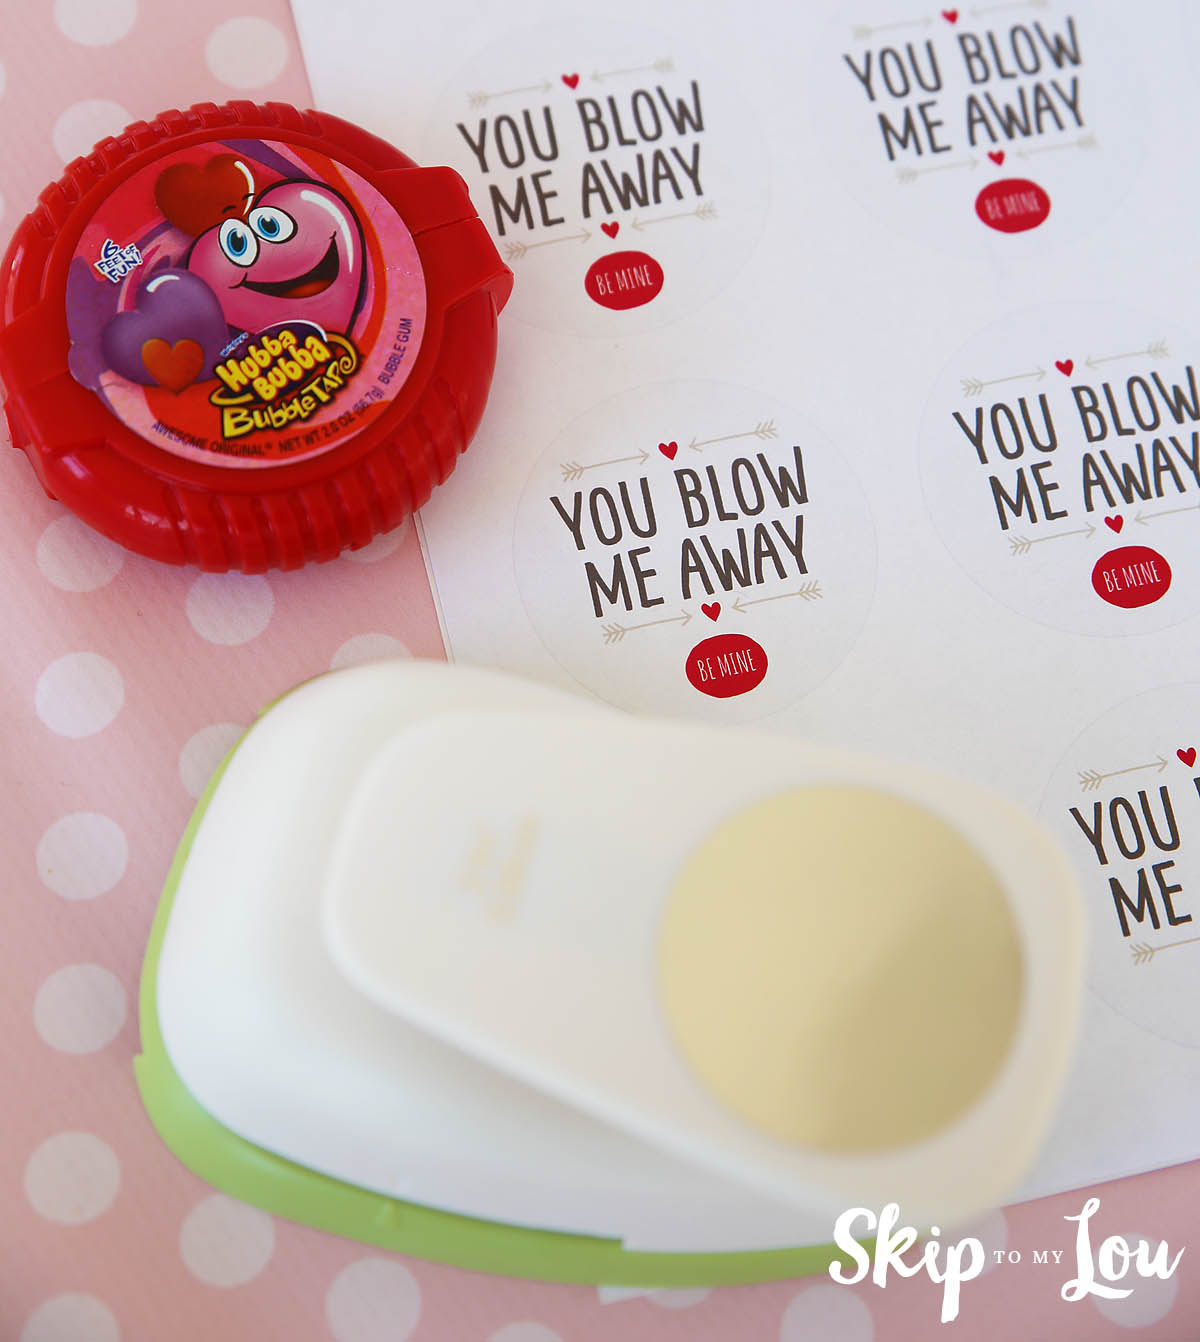 image about You Blow Me Away Valentine Printable titled Yourself Blow Me Absent Printable Valentine Miss Toward My Lou